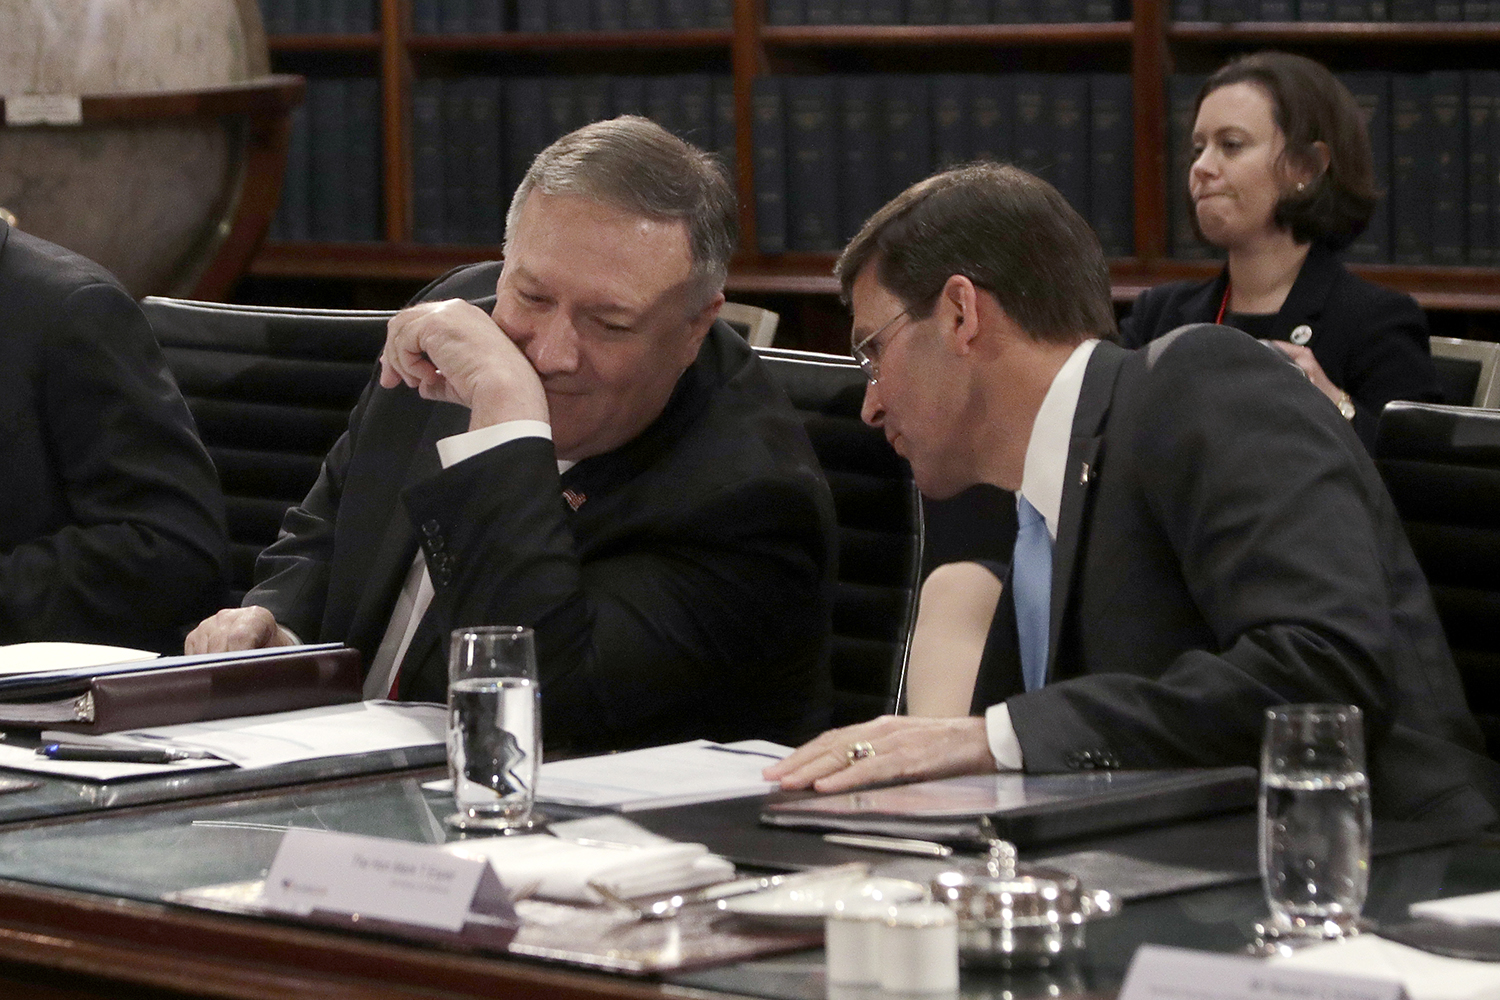 U.S. Secretary of State Mike Pompeo confers with Esper at the beginning of bilateral talks with Australian counterparts in Sydney, Australia, on Aug. 4.